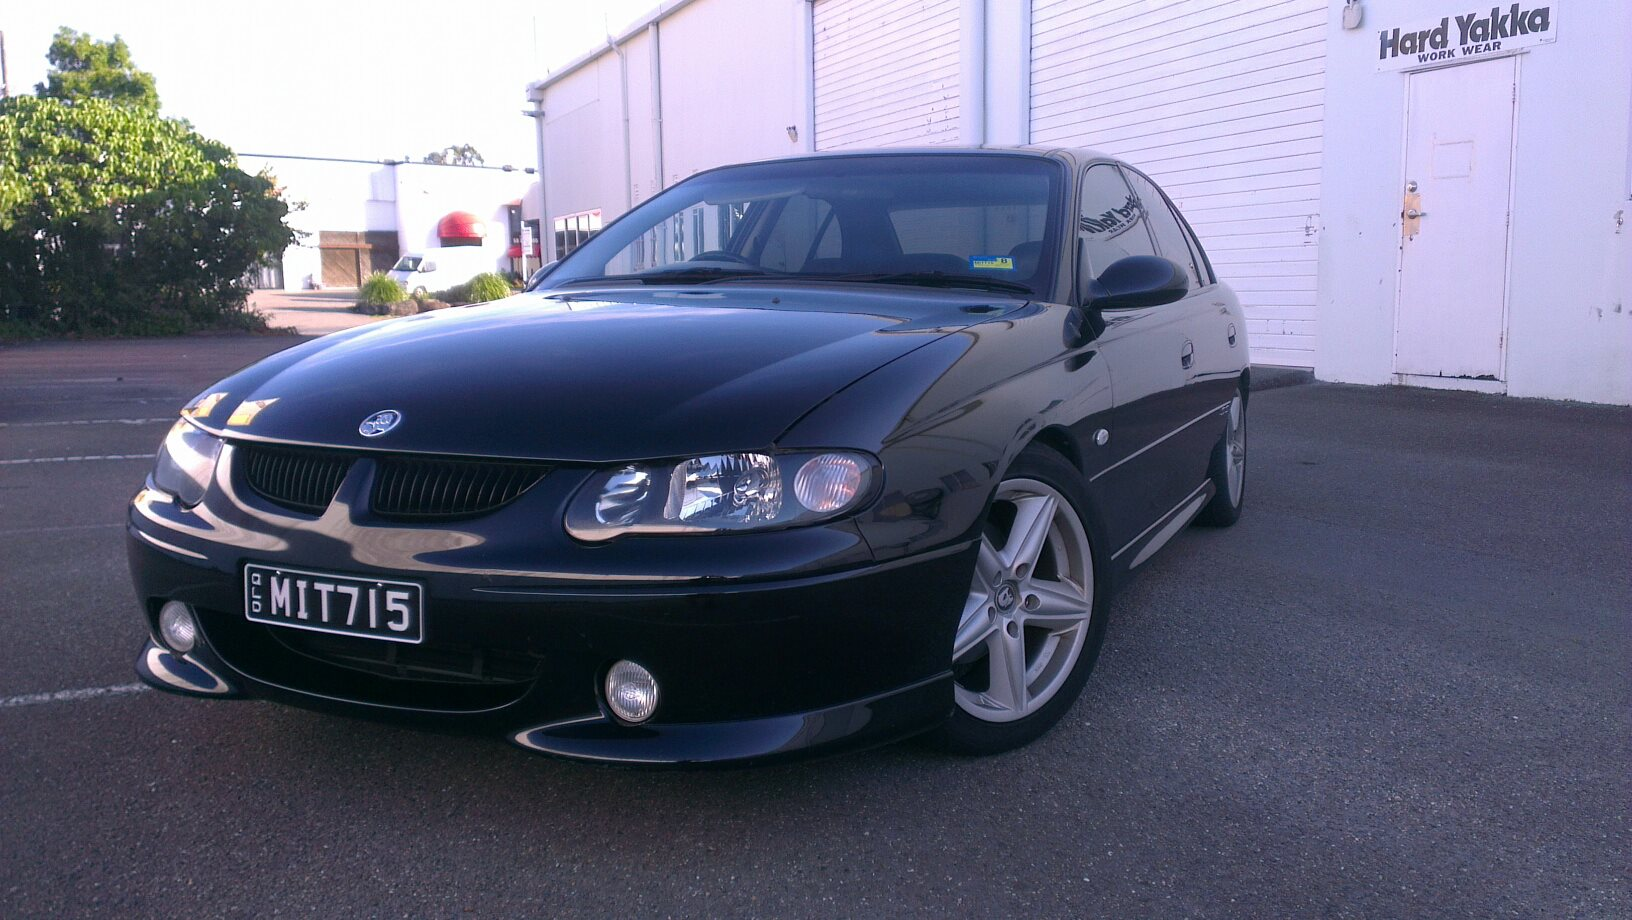 2001 Holden Commodore SS VXII - QLD: Gold Coast